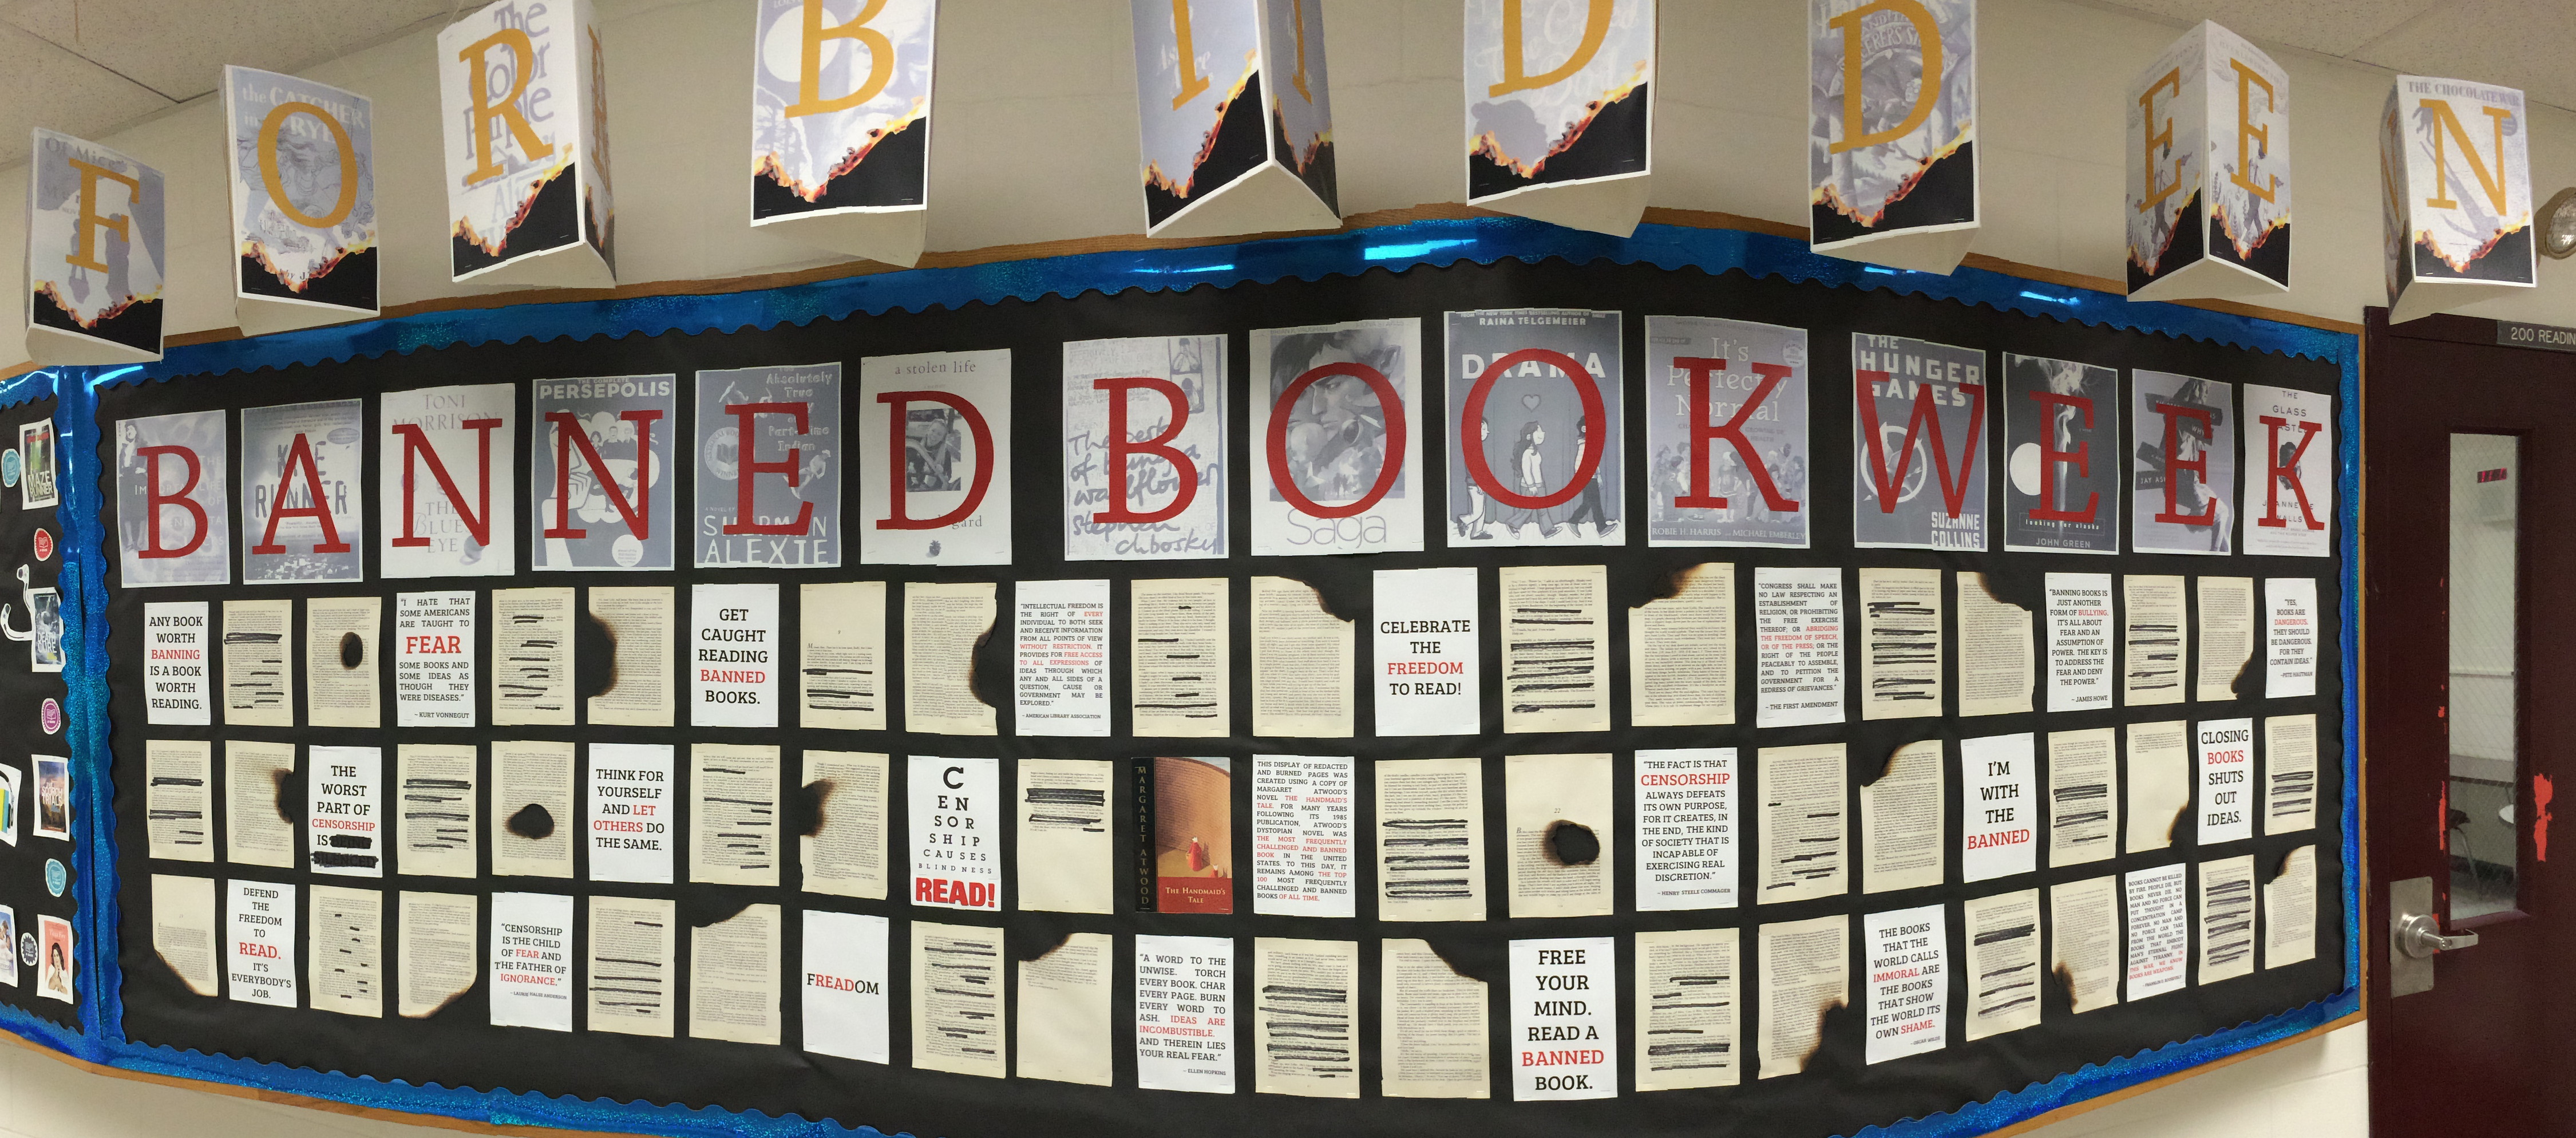 Cape Elizabeth Schools Llc Banned Books Week Banned Books Library Displays